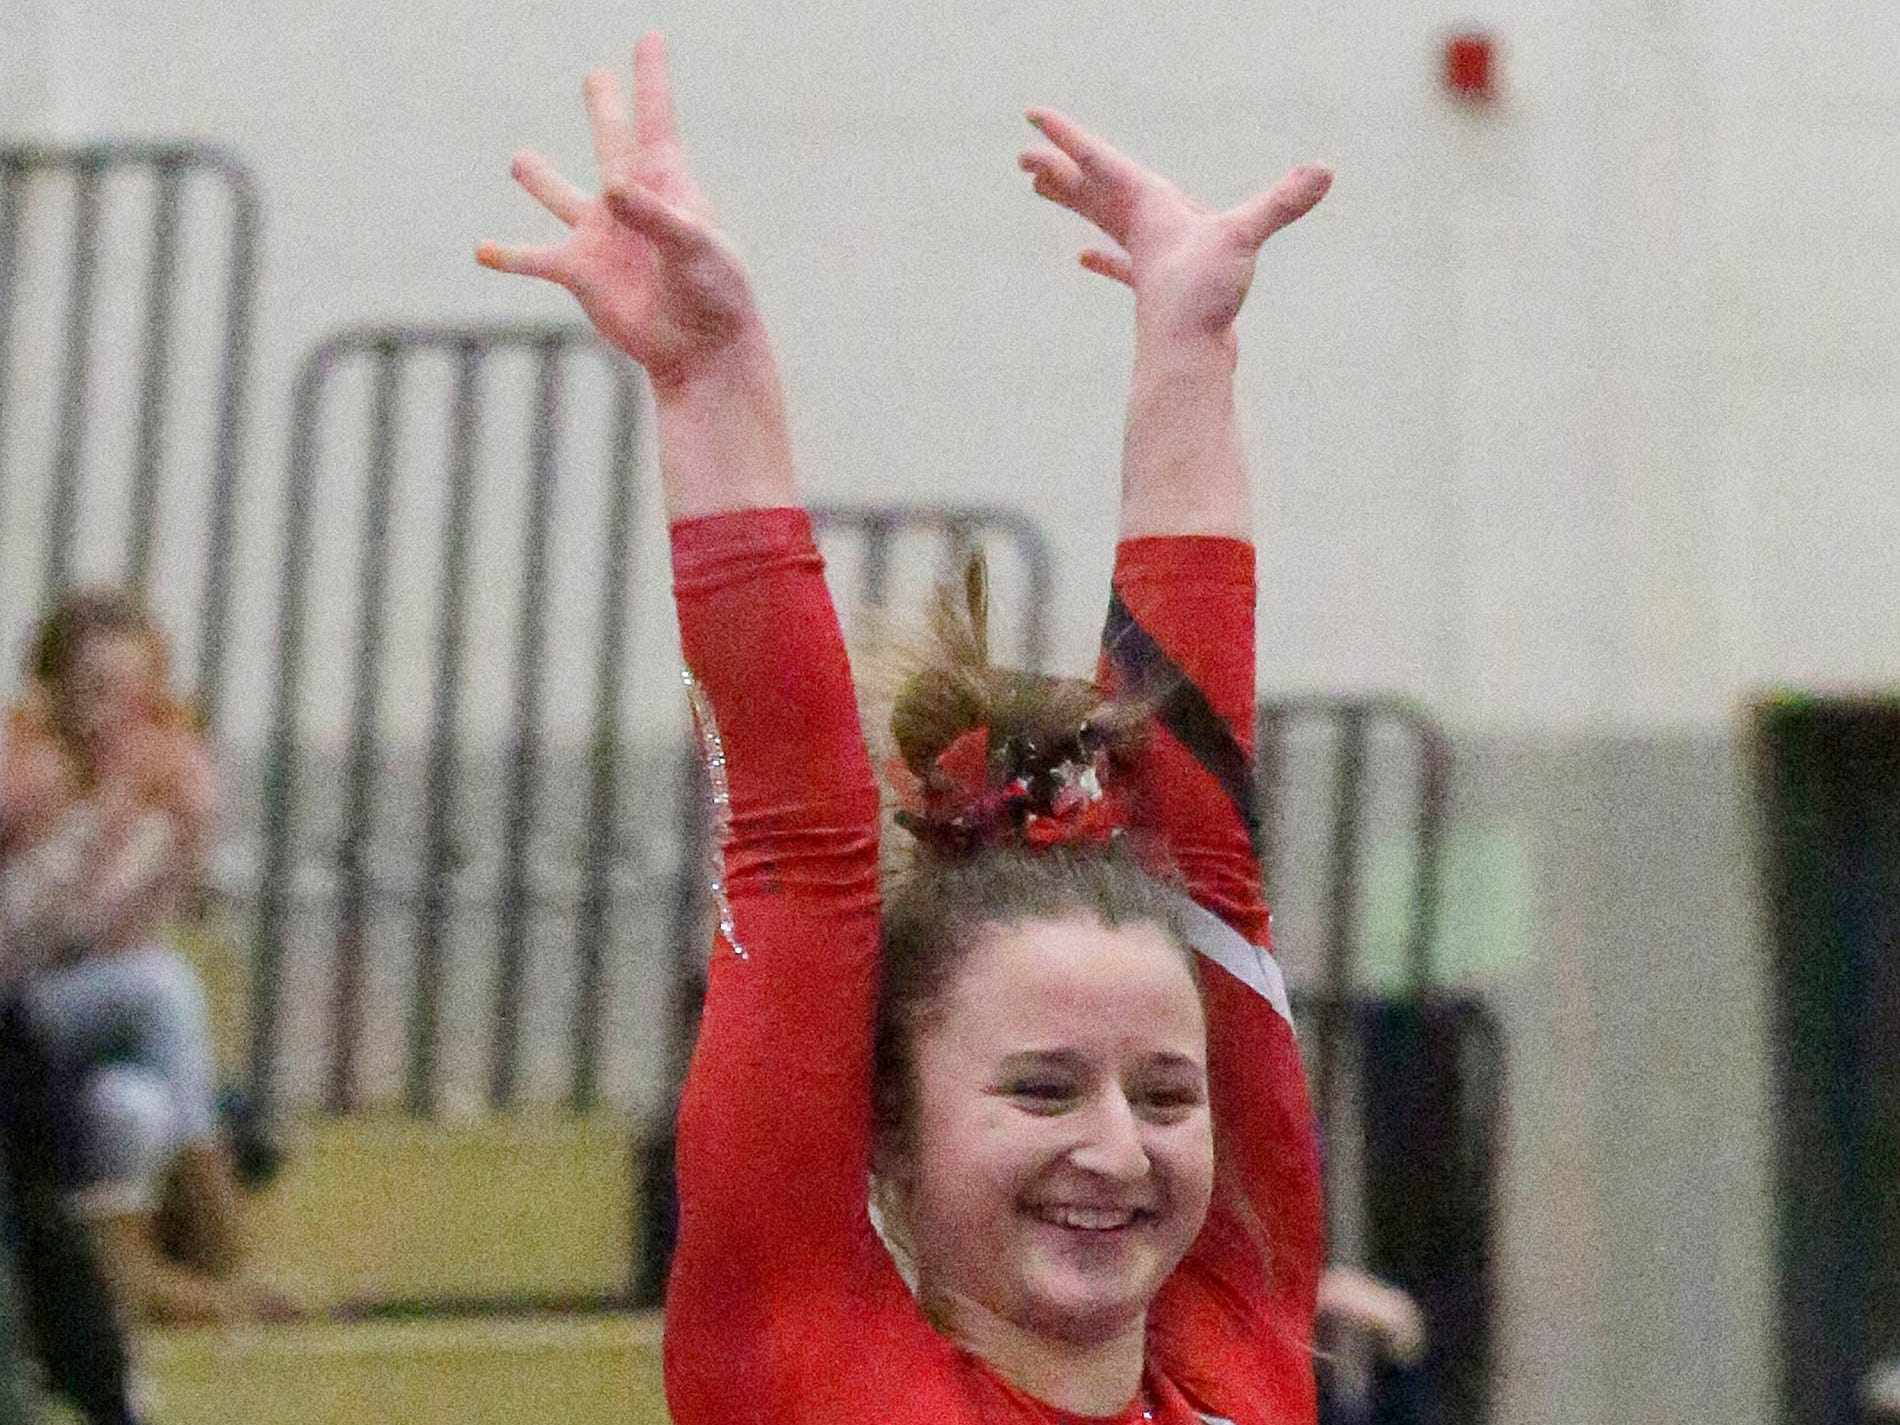 Manitowoc Lincoln's Brynn Tackett is all smiles following her balance beam routine at the WIAA Eastern Valley Conference Gymnastics Meet at Sheboygan South, Friday, February 15, 2019, in Sheboygan, Wis.